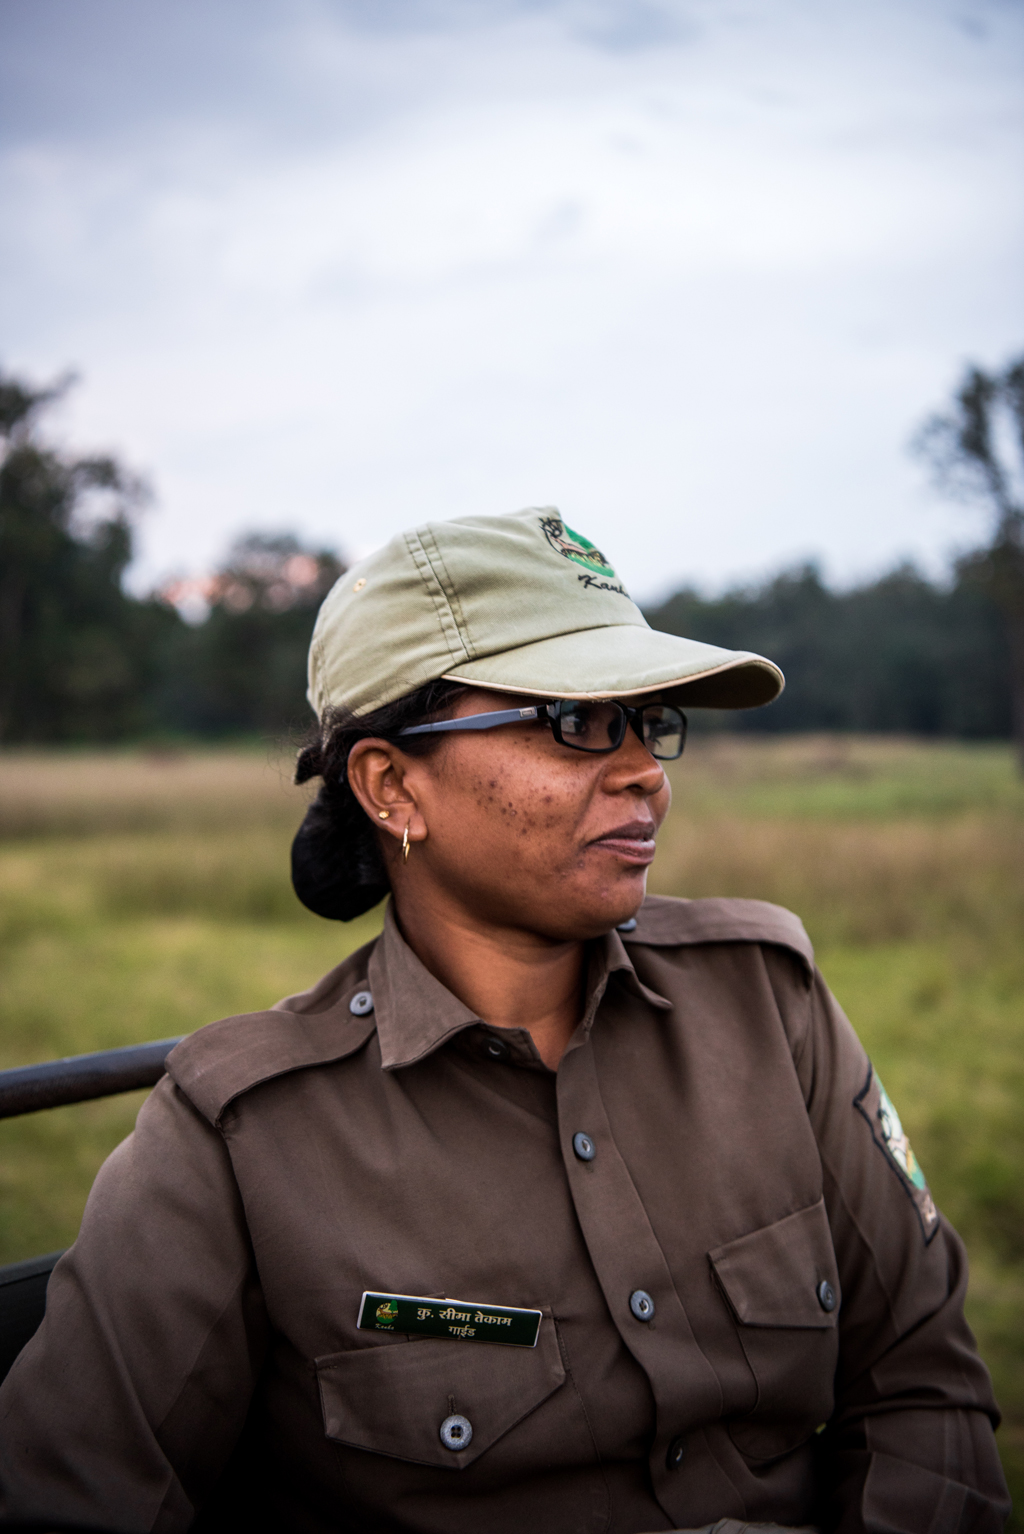 Seema, one the few women guides at Kanha National Park's Mukki Gate.